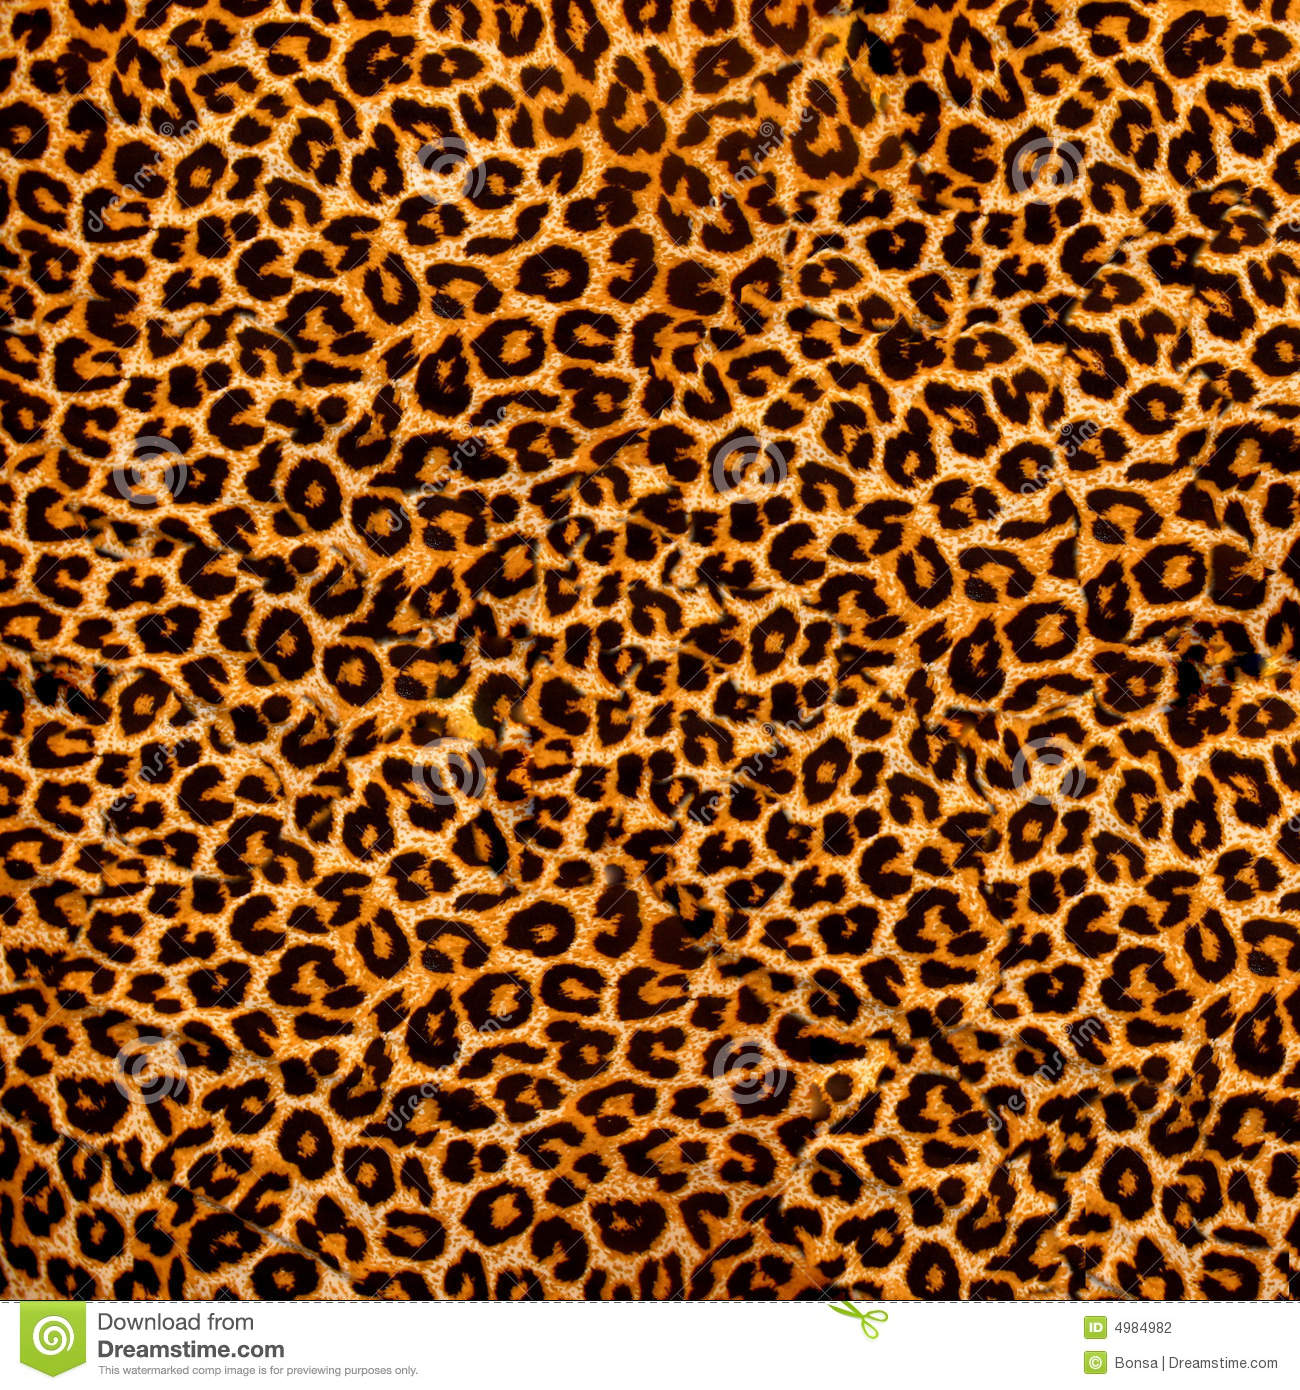 Leopard Fabric Stock Photo Image Of Fuzzy Leather Brown